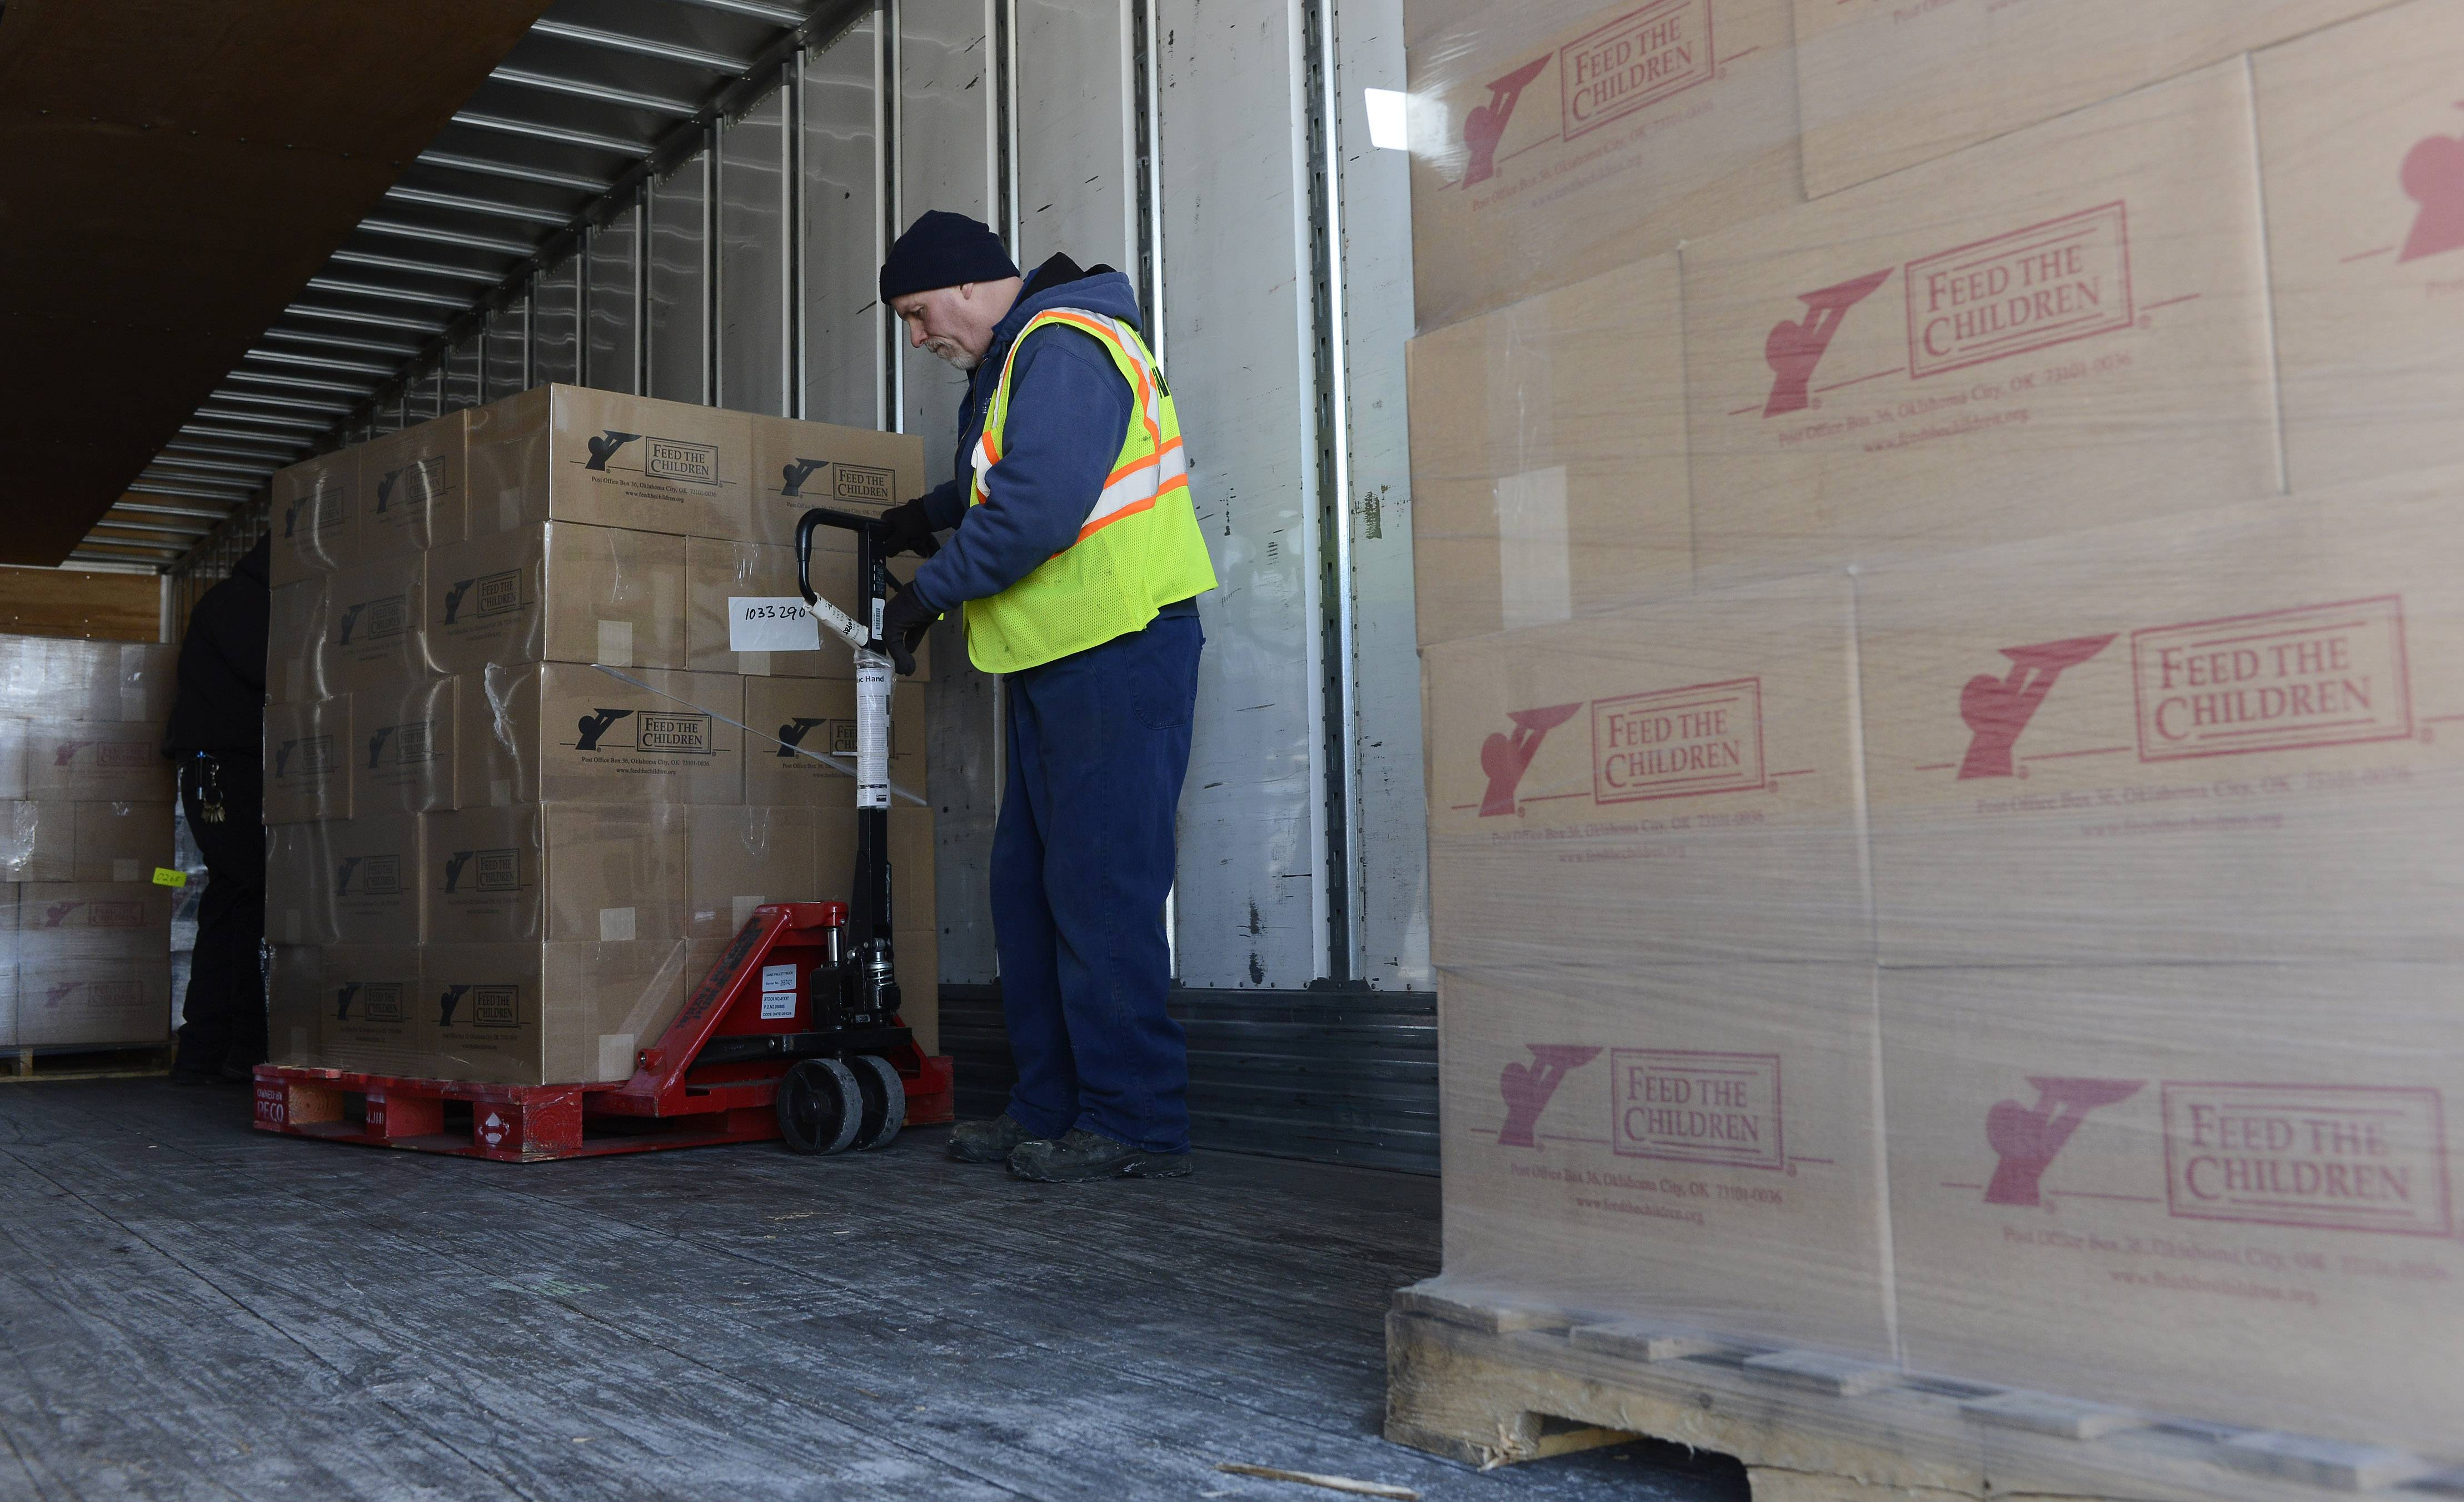 Con Erskine of Mount Prospect Public Works moves pallets of food and other items donated Thursday by Feed the Children at Mount Prospect Fire Station 14 on Kensington Road. The donation will benefit more than 400 struggling families in Mount Prospect.